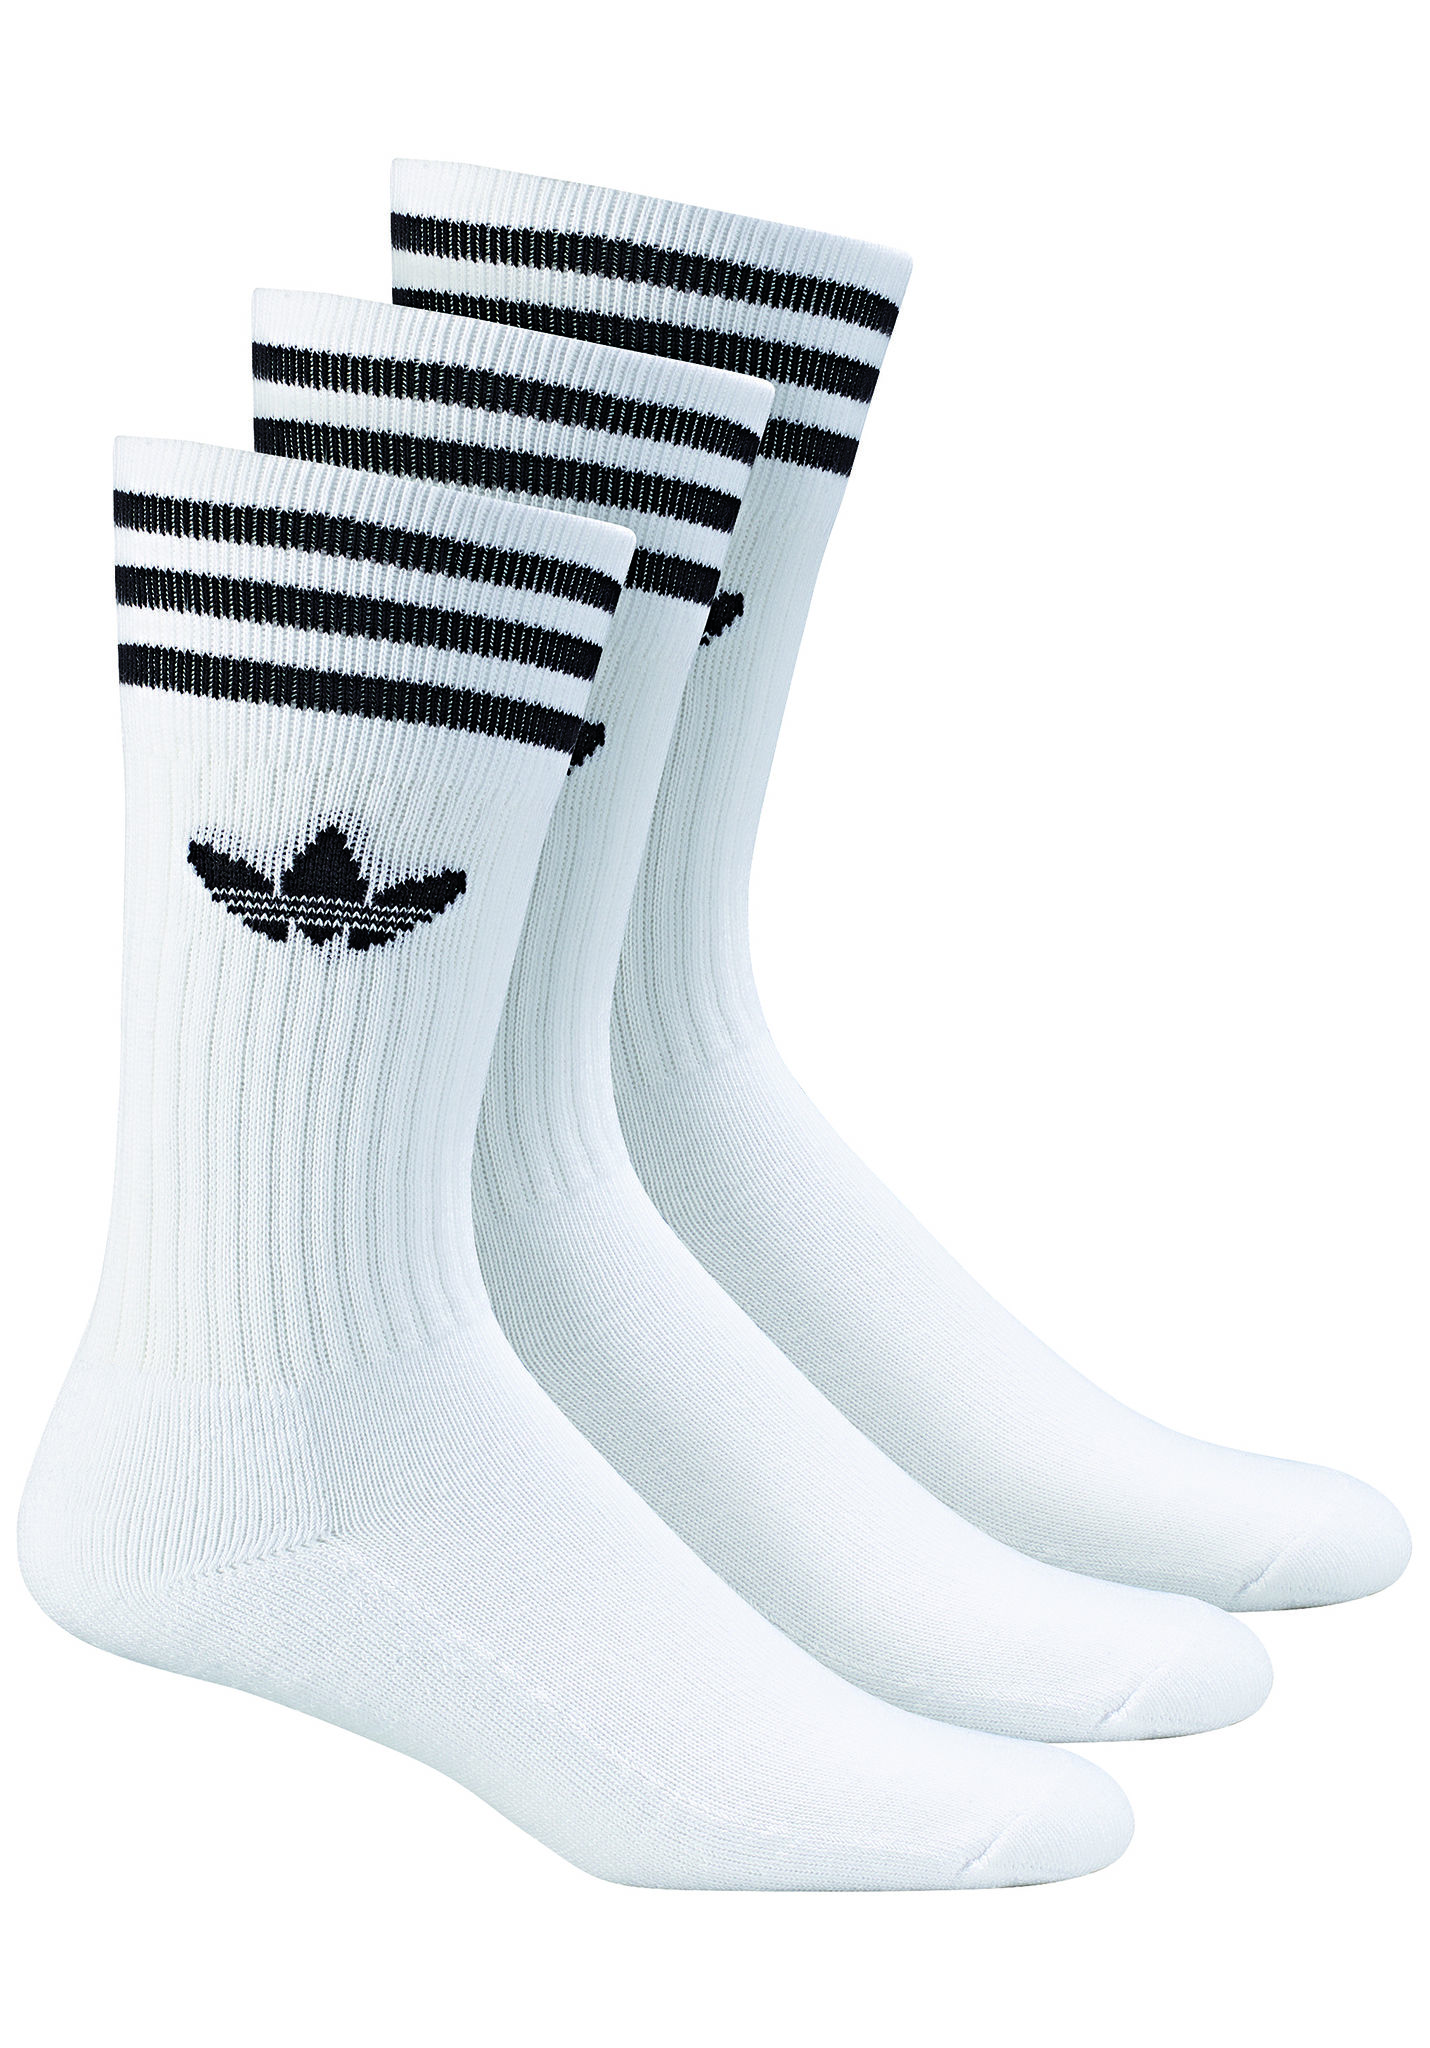 adidas Originals Solid Crew - Socken - Weiß